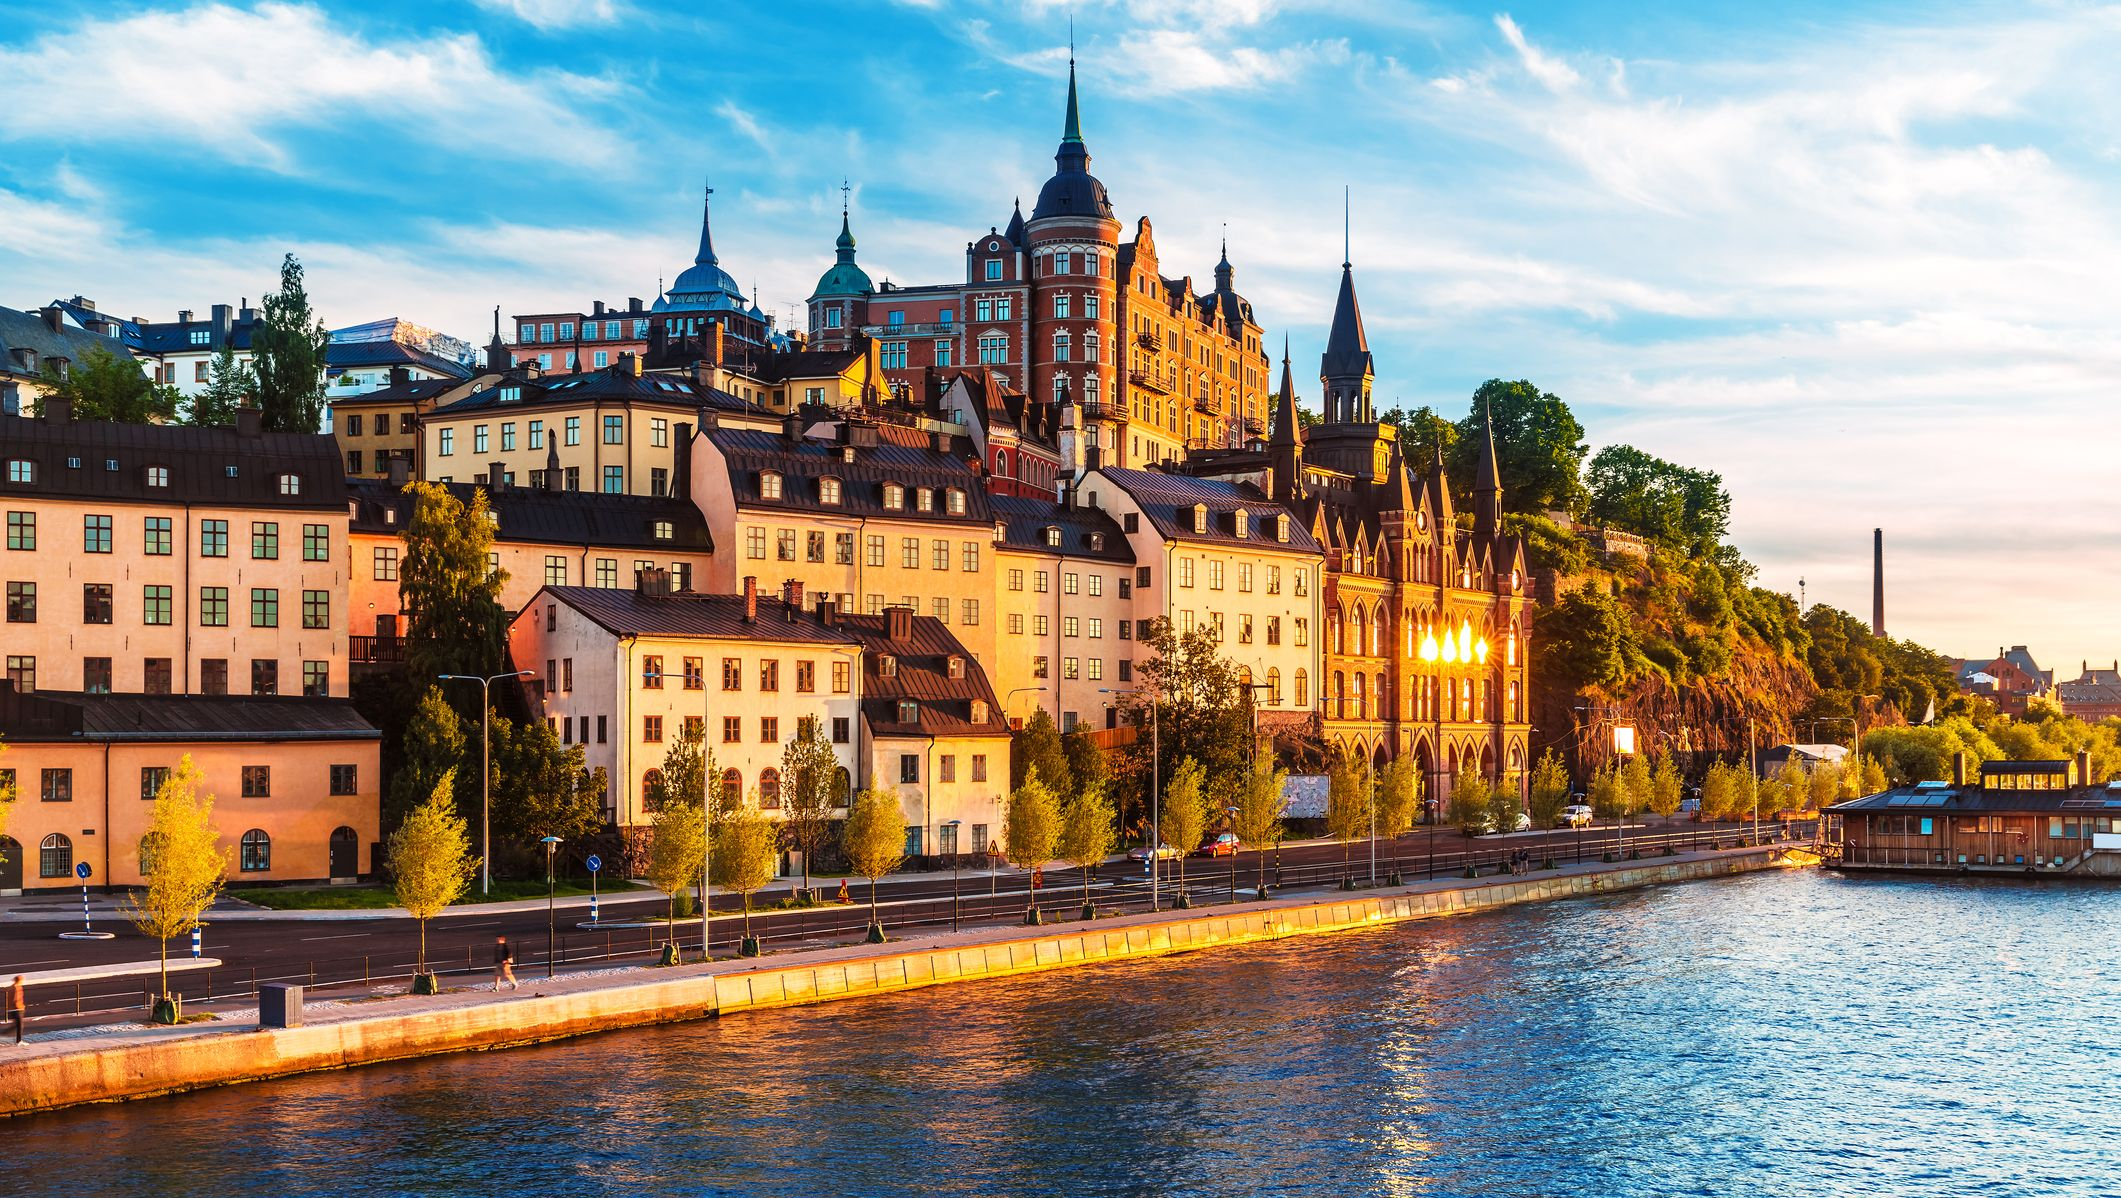 Stockholm travel guide: 48 hours in Sweden's capital city